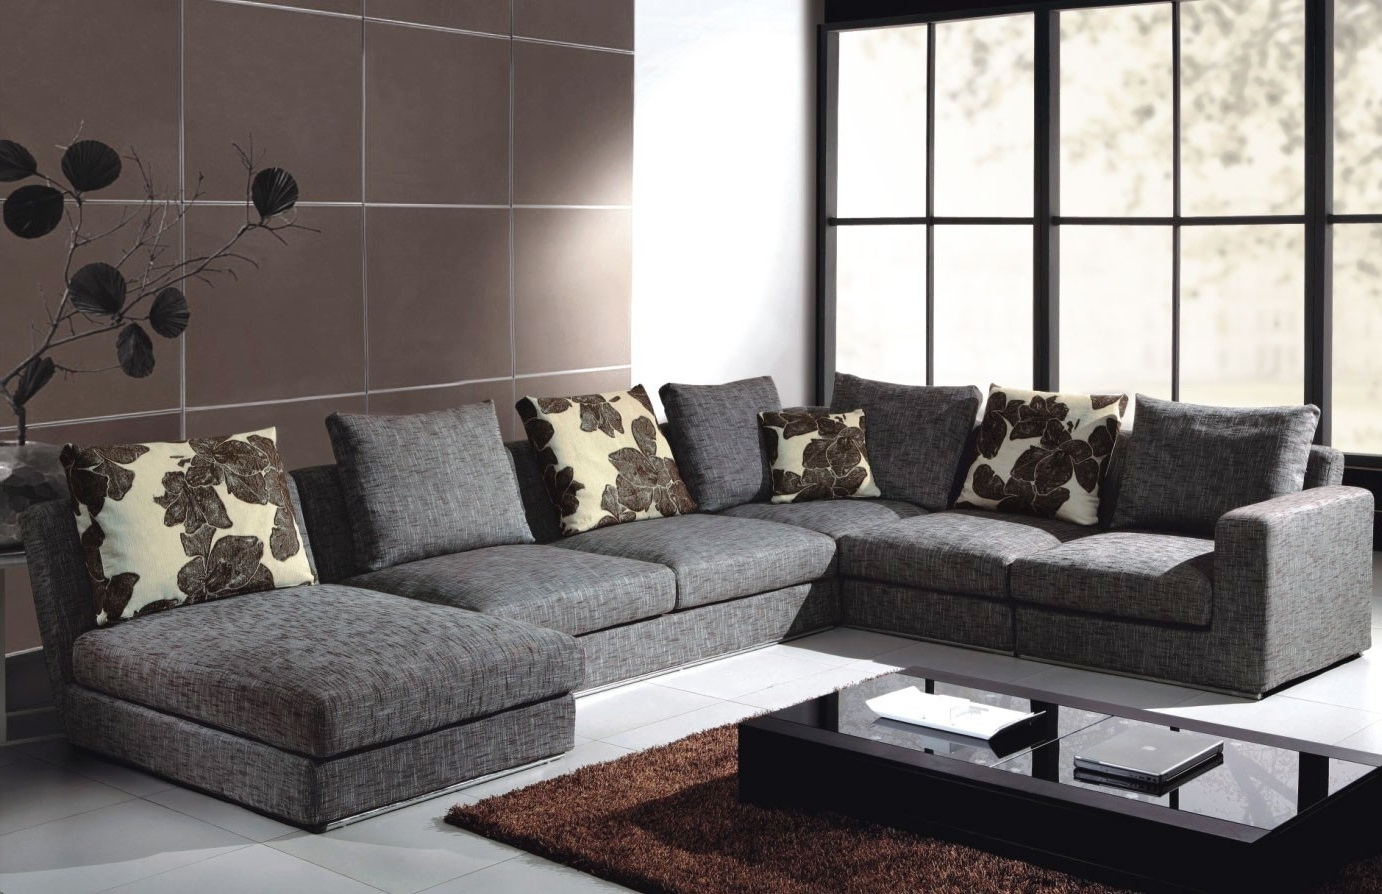 Berkline Sectional Sofas Within Newest Ideas For Disassemble A Berkline Sectional — Umpquavalleyquilters (View 7 of 20)